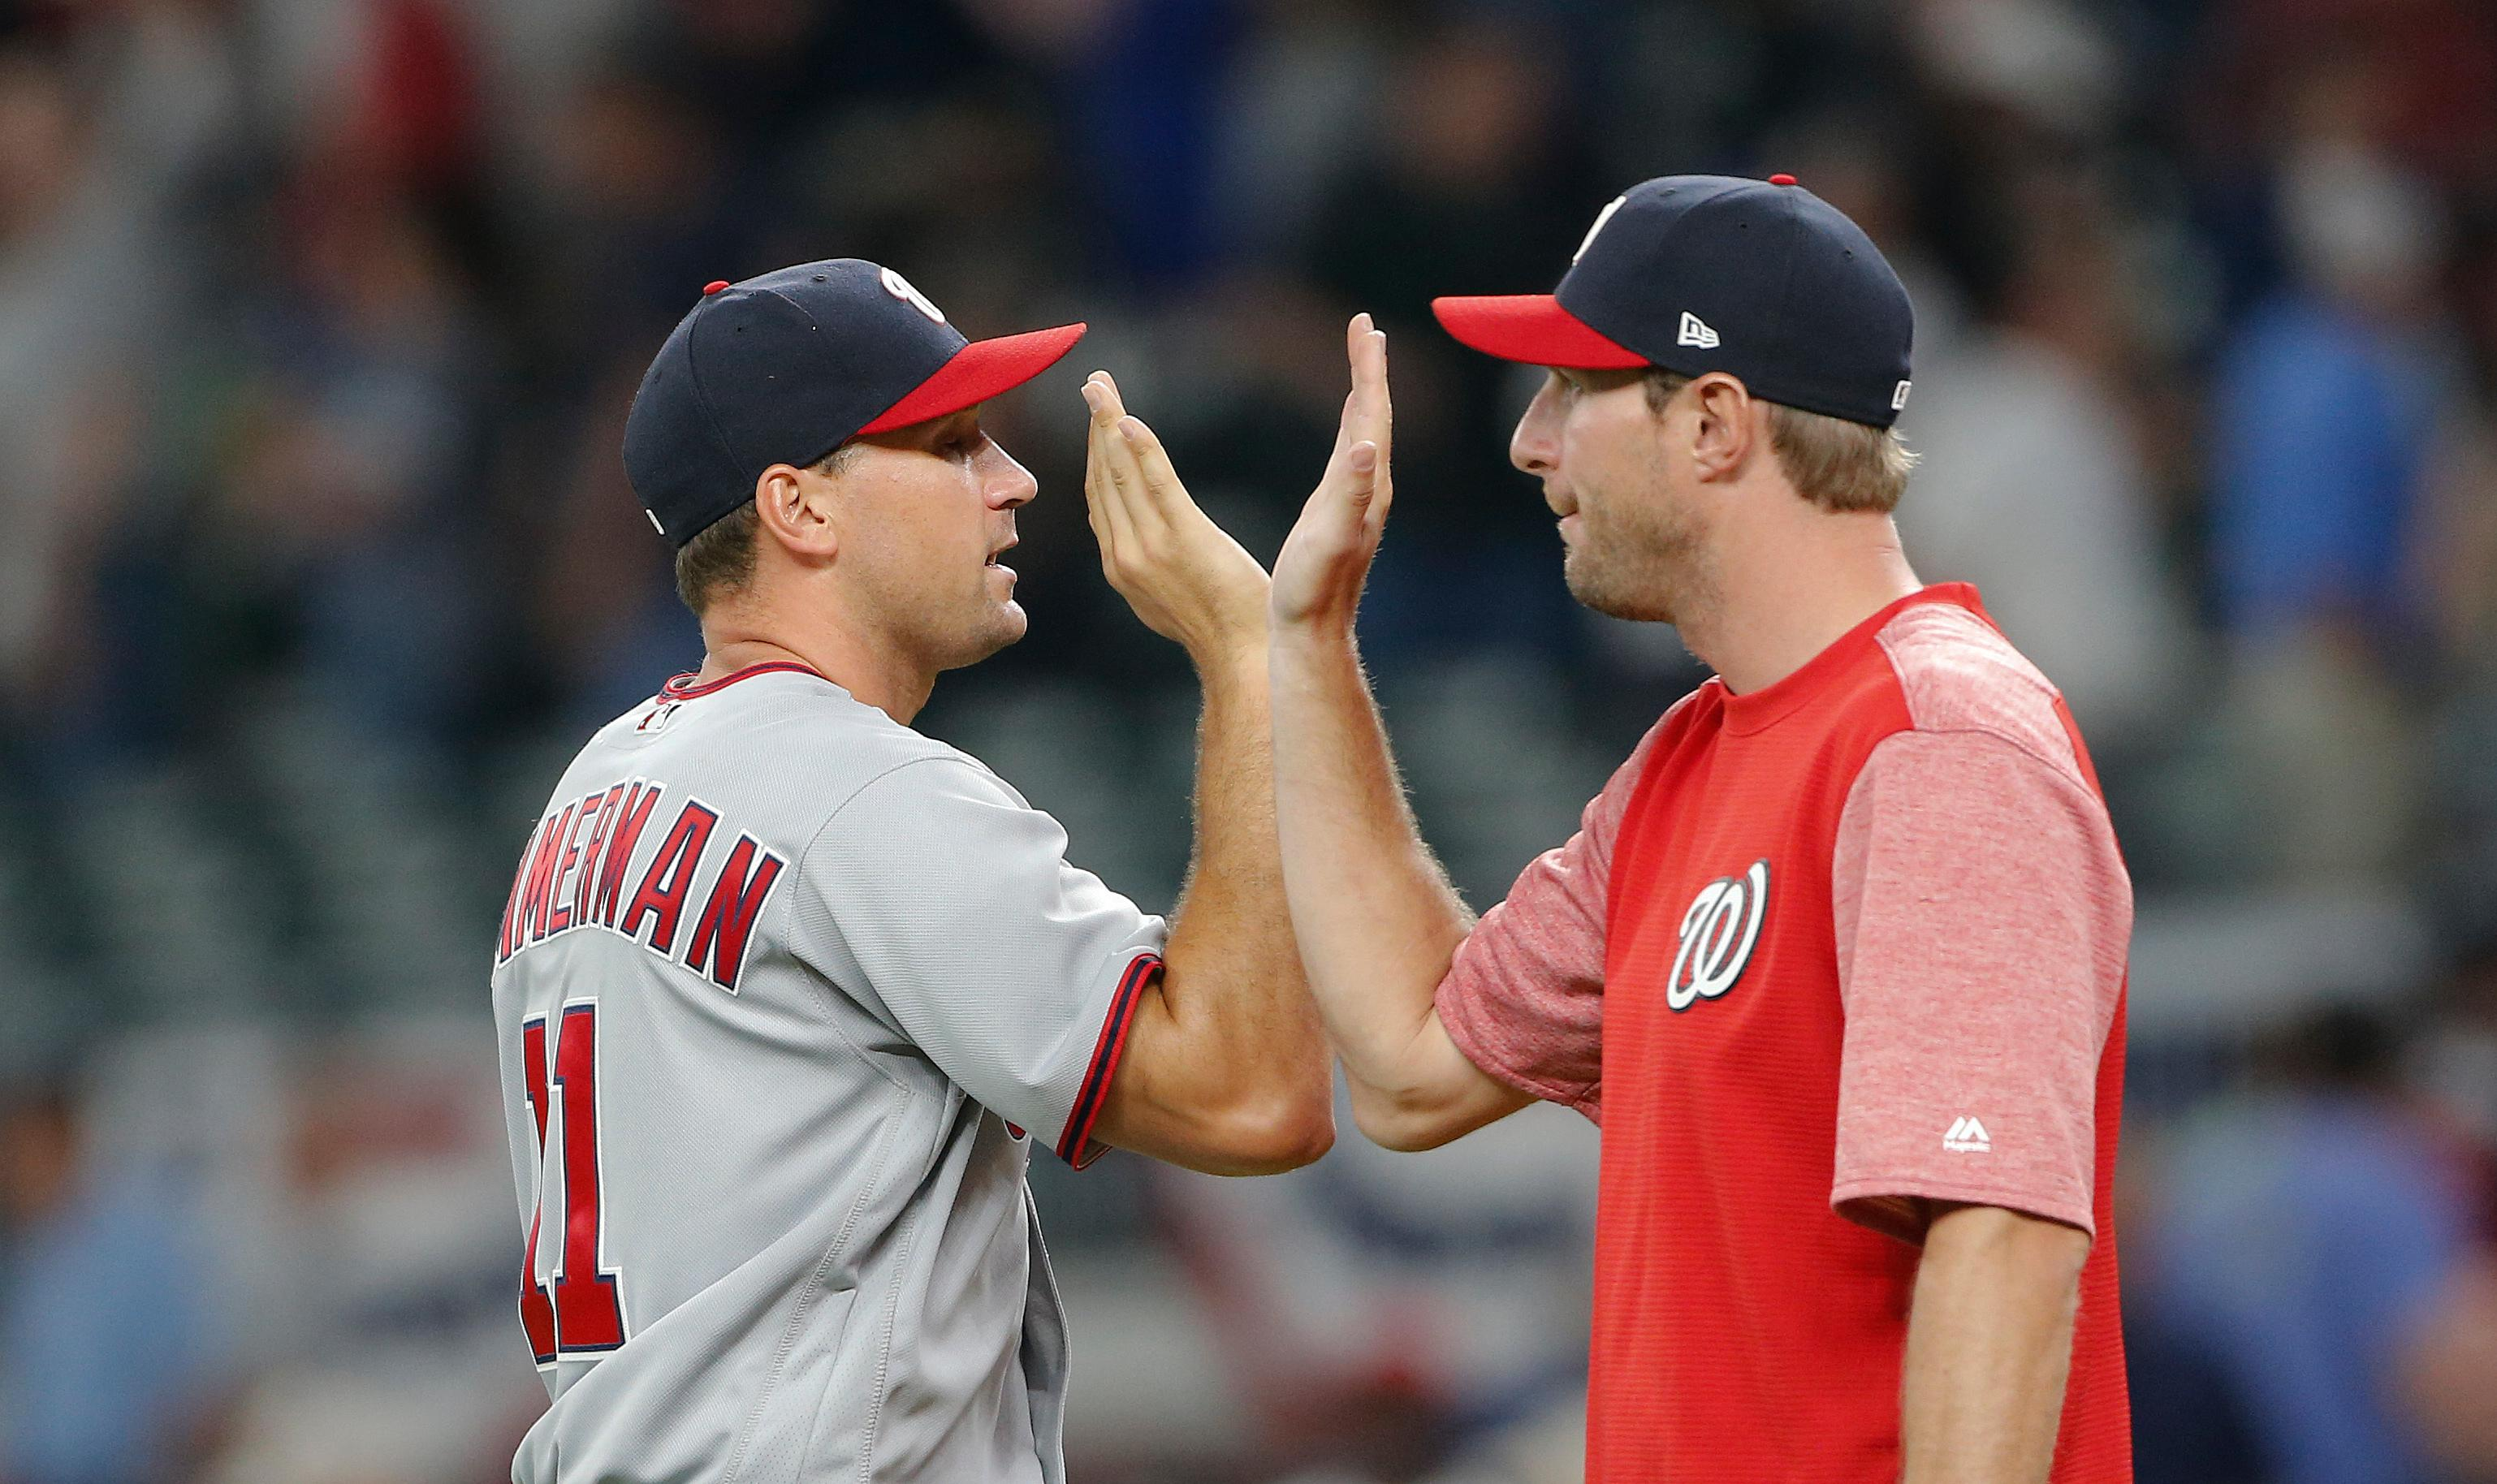 Washington Nationals first baseman Ryan Zimmerman (11), left, celebrates with pitcher Max Scherzer (31) after the Nationals defeated the Atlanta Braves 3-2 in a baseball game Thursday, April 20, 2017, in Atlanta. Zimmerman hit a two-run home. Scherzer did not play. (AP Photo/John Bazemore)